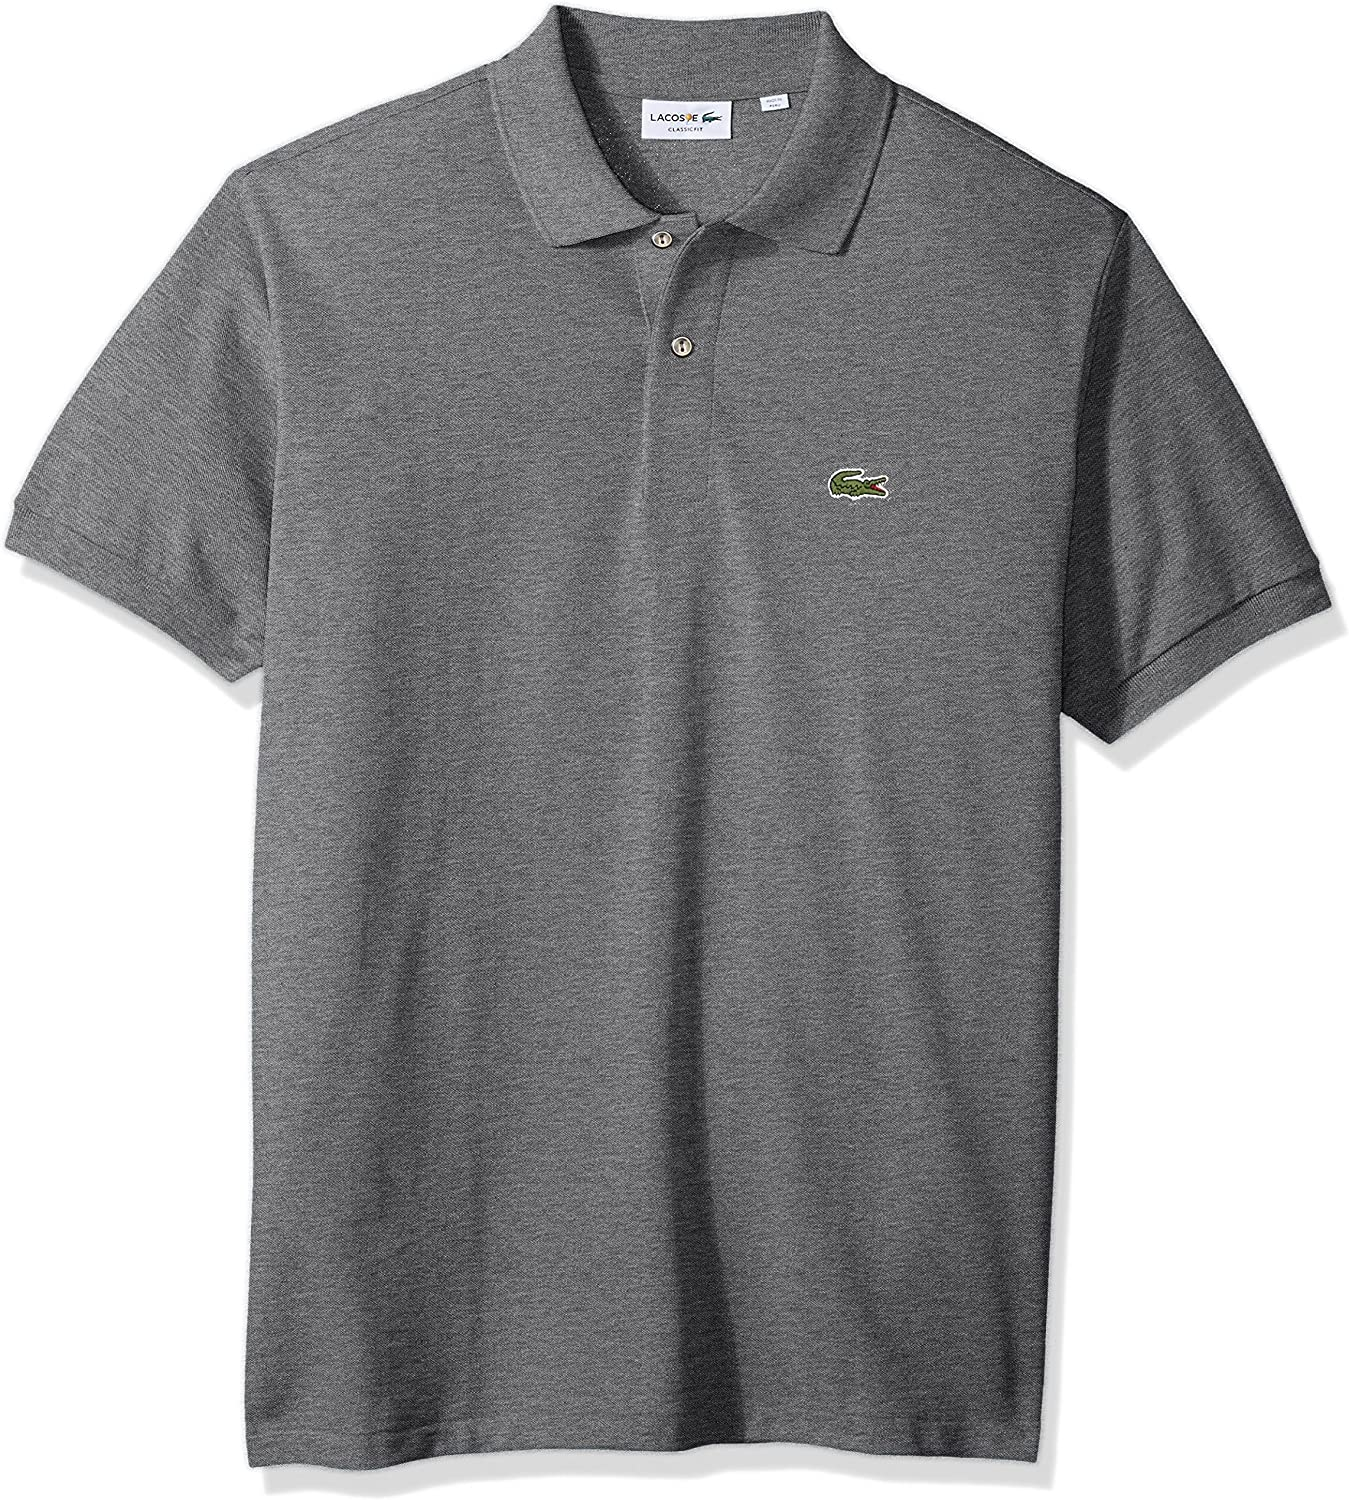 Lacoste Mens Classic Short Sleeve Chine Pique Polo Shirt